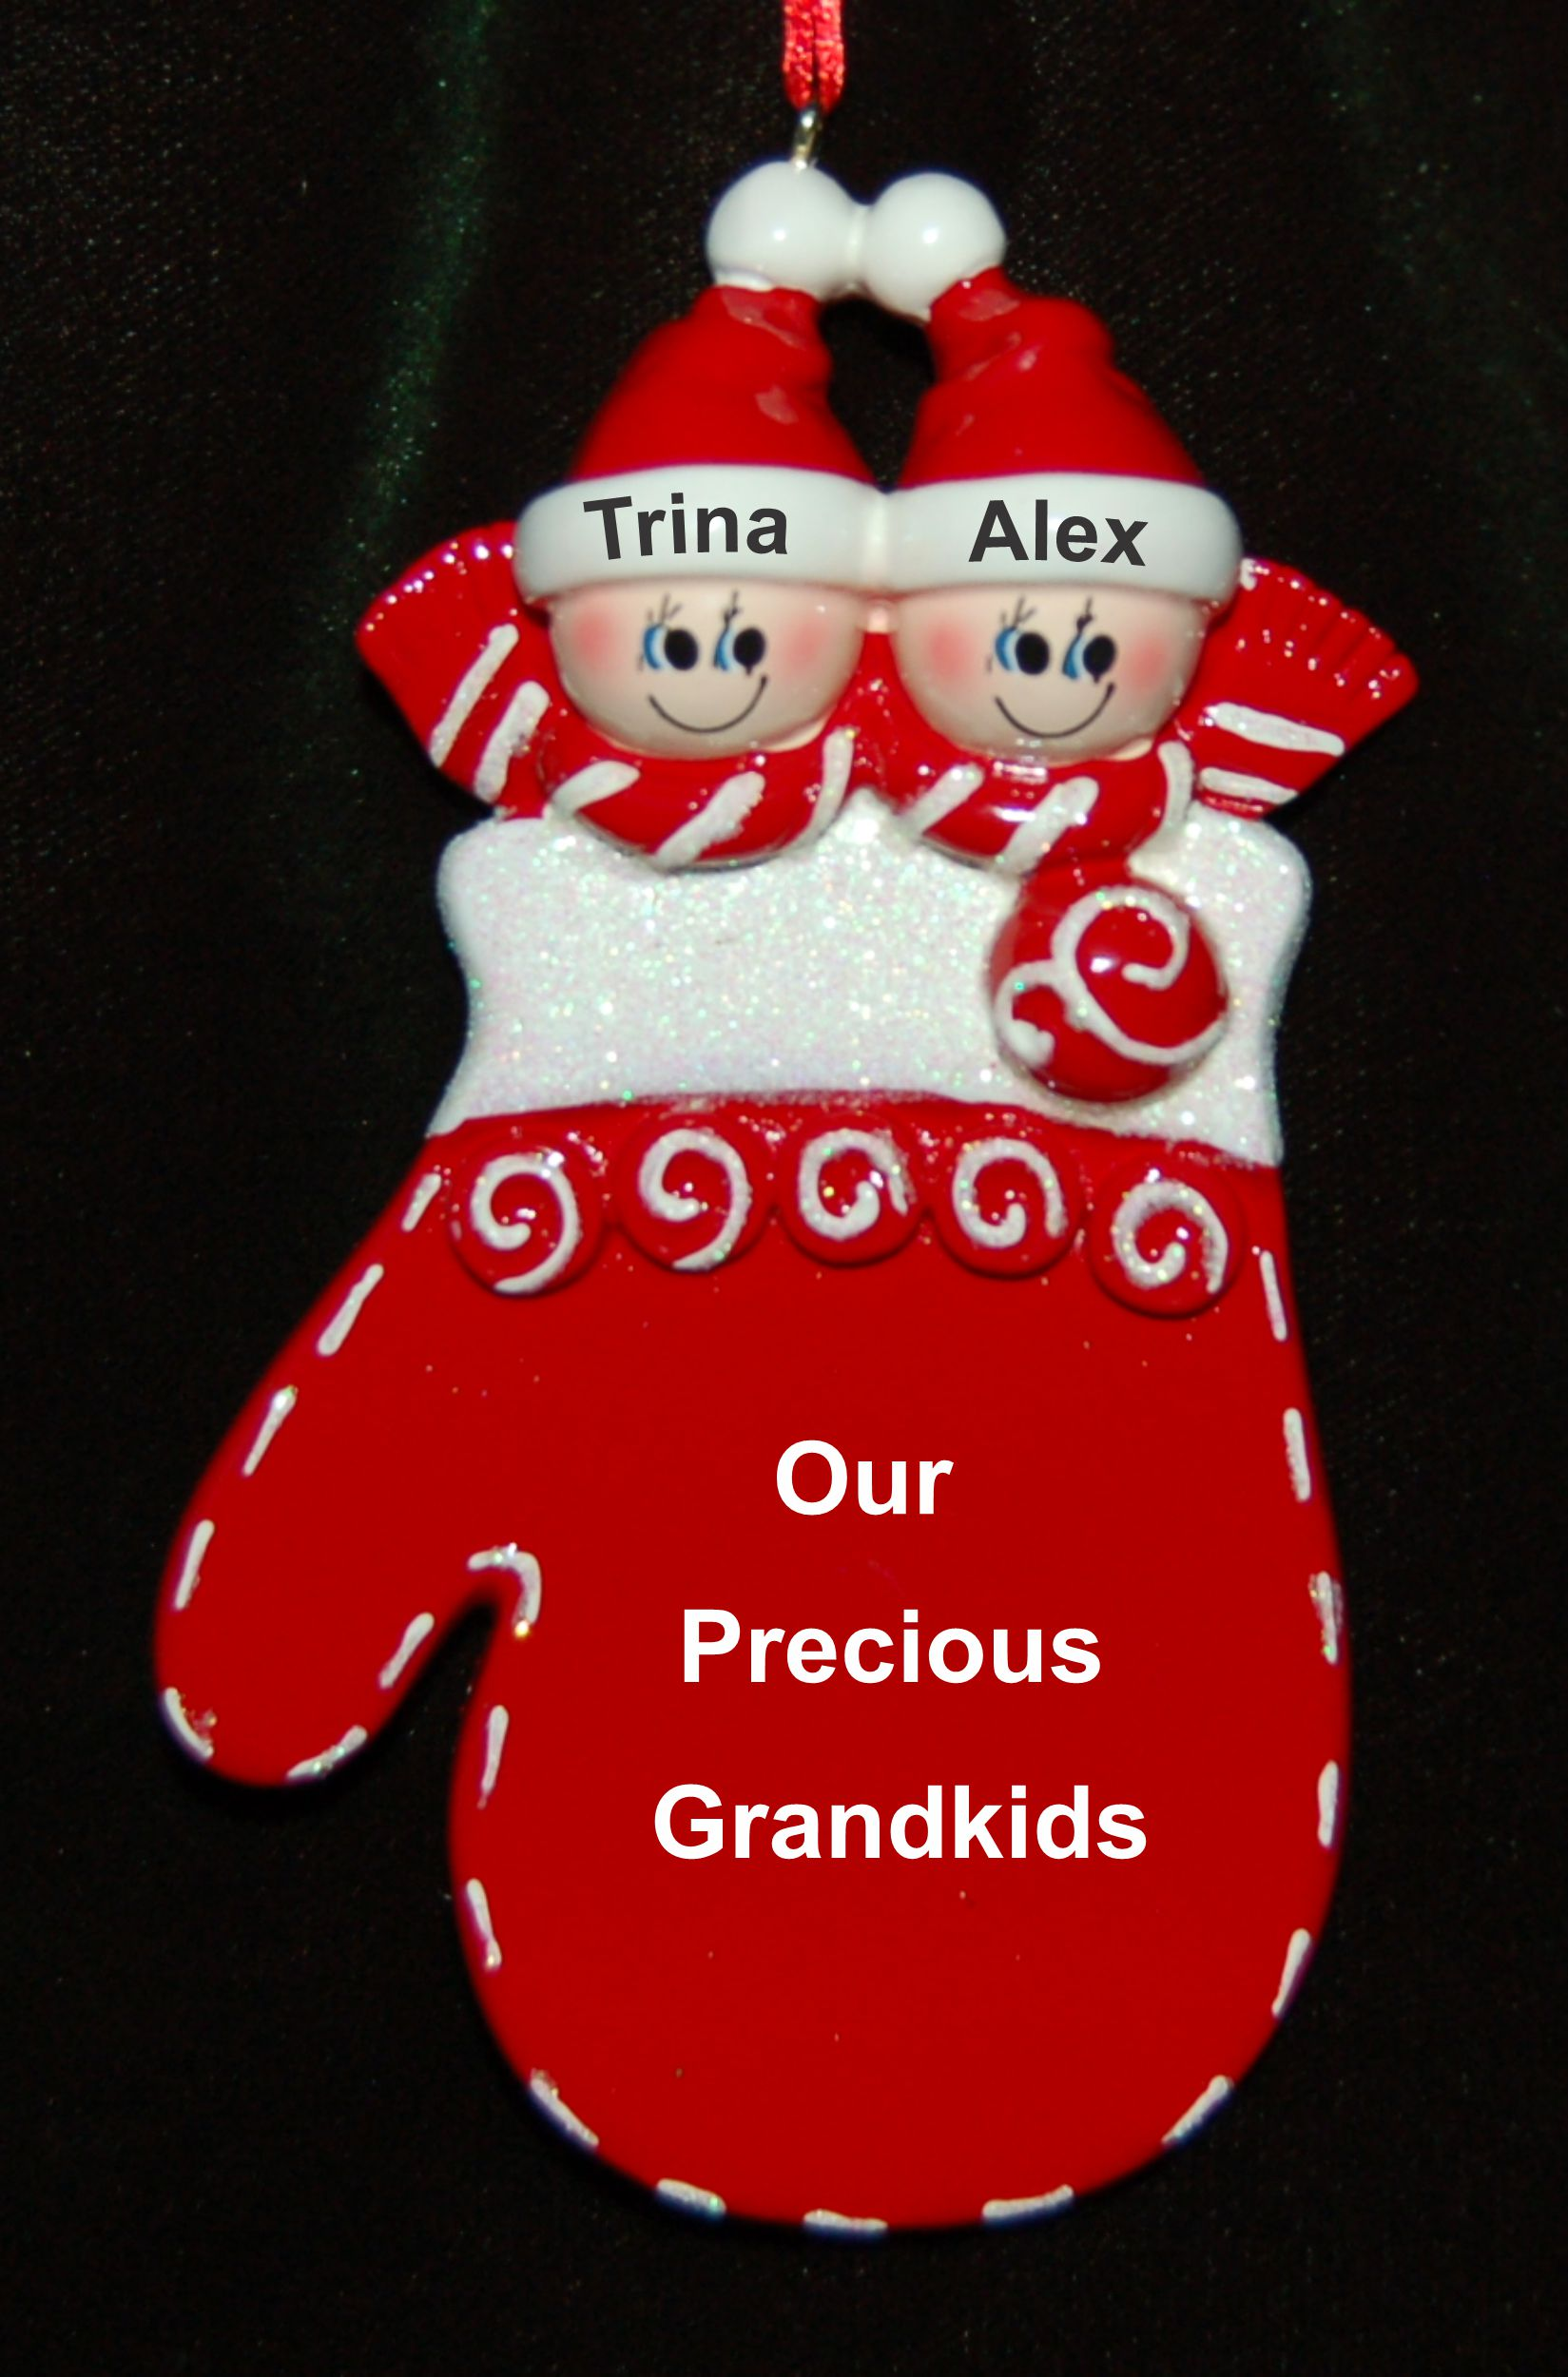 Personalized Grandparents Christmas Ornament Holiday Mitten 2 Grandkids by Russell Rhodes